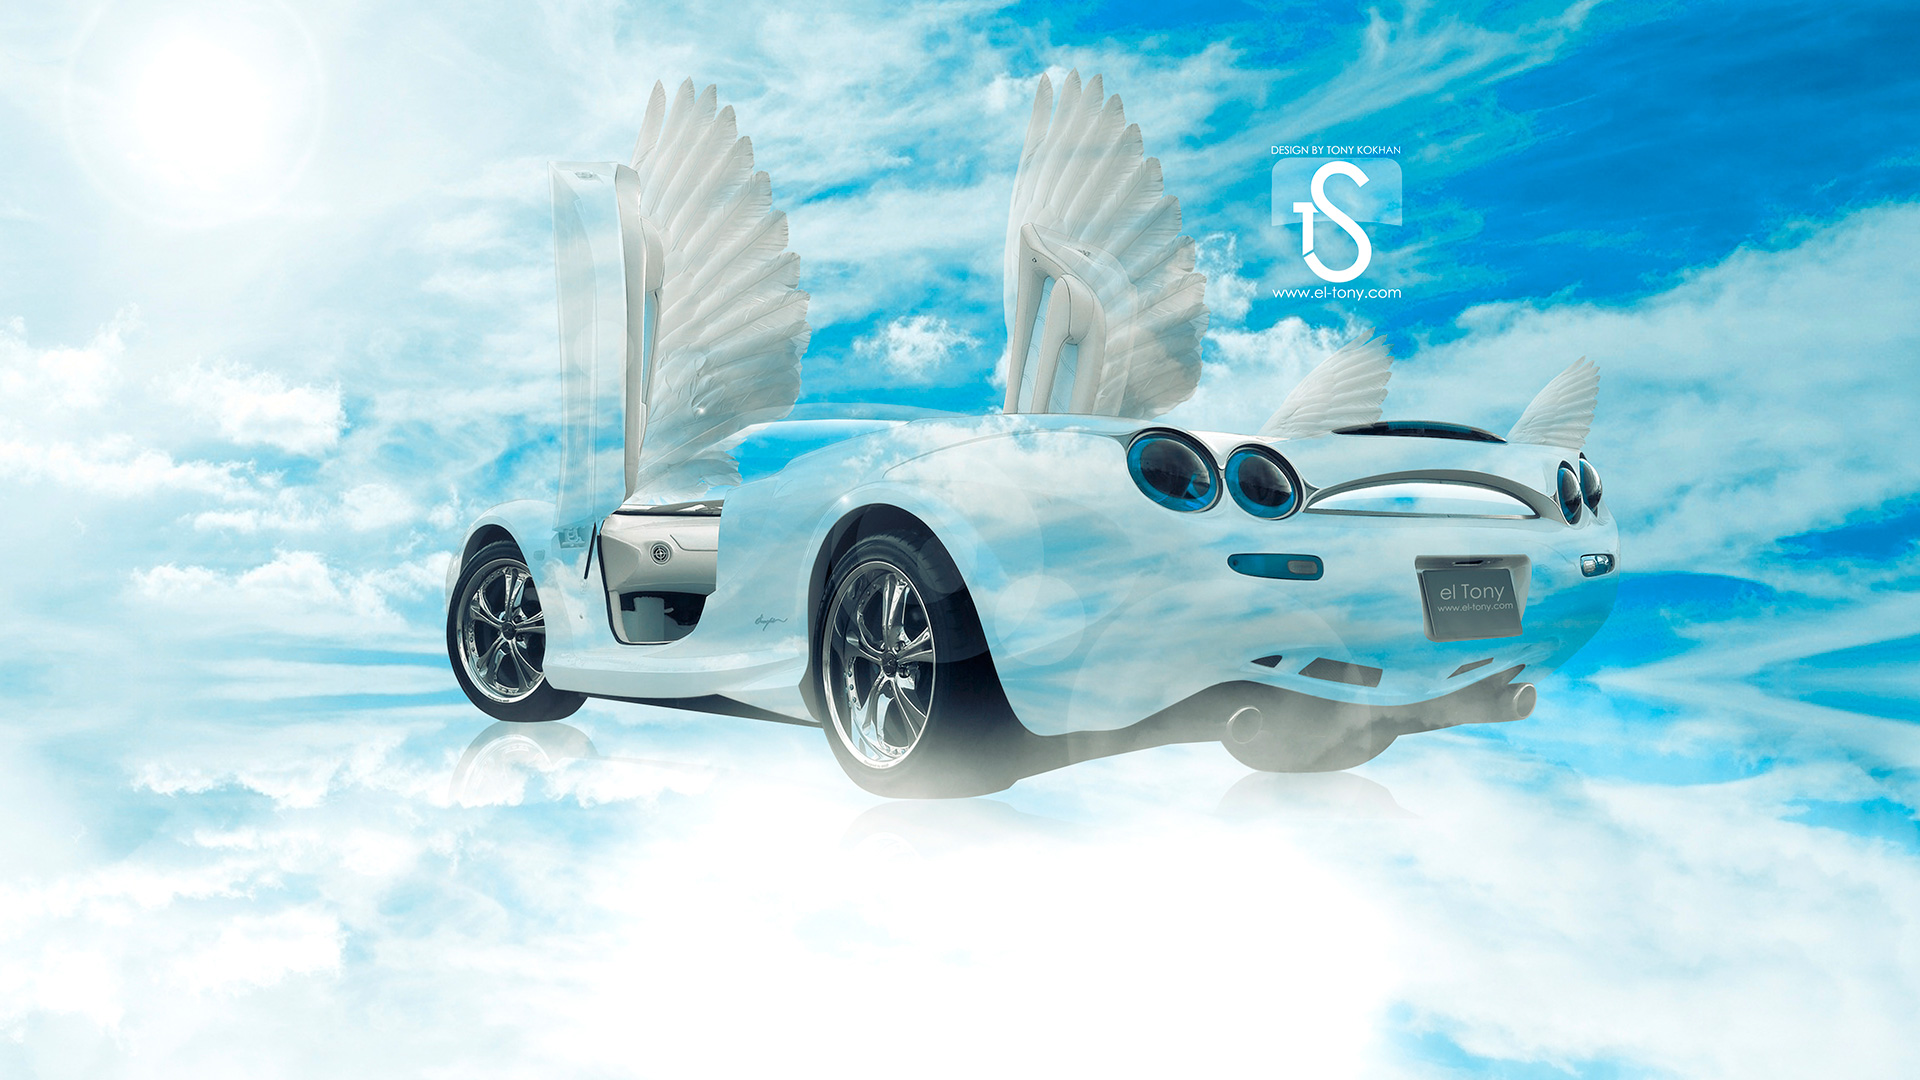 Charmant ... Fly Blue Sky Car 2013 HD Wallpapers Design